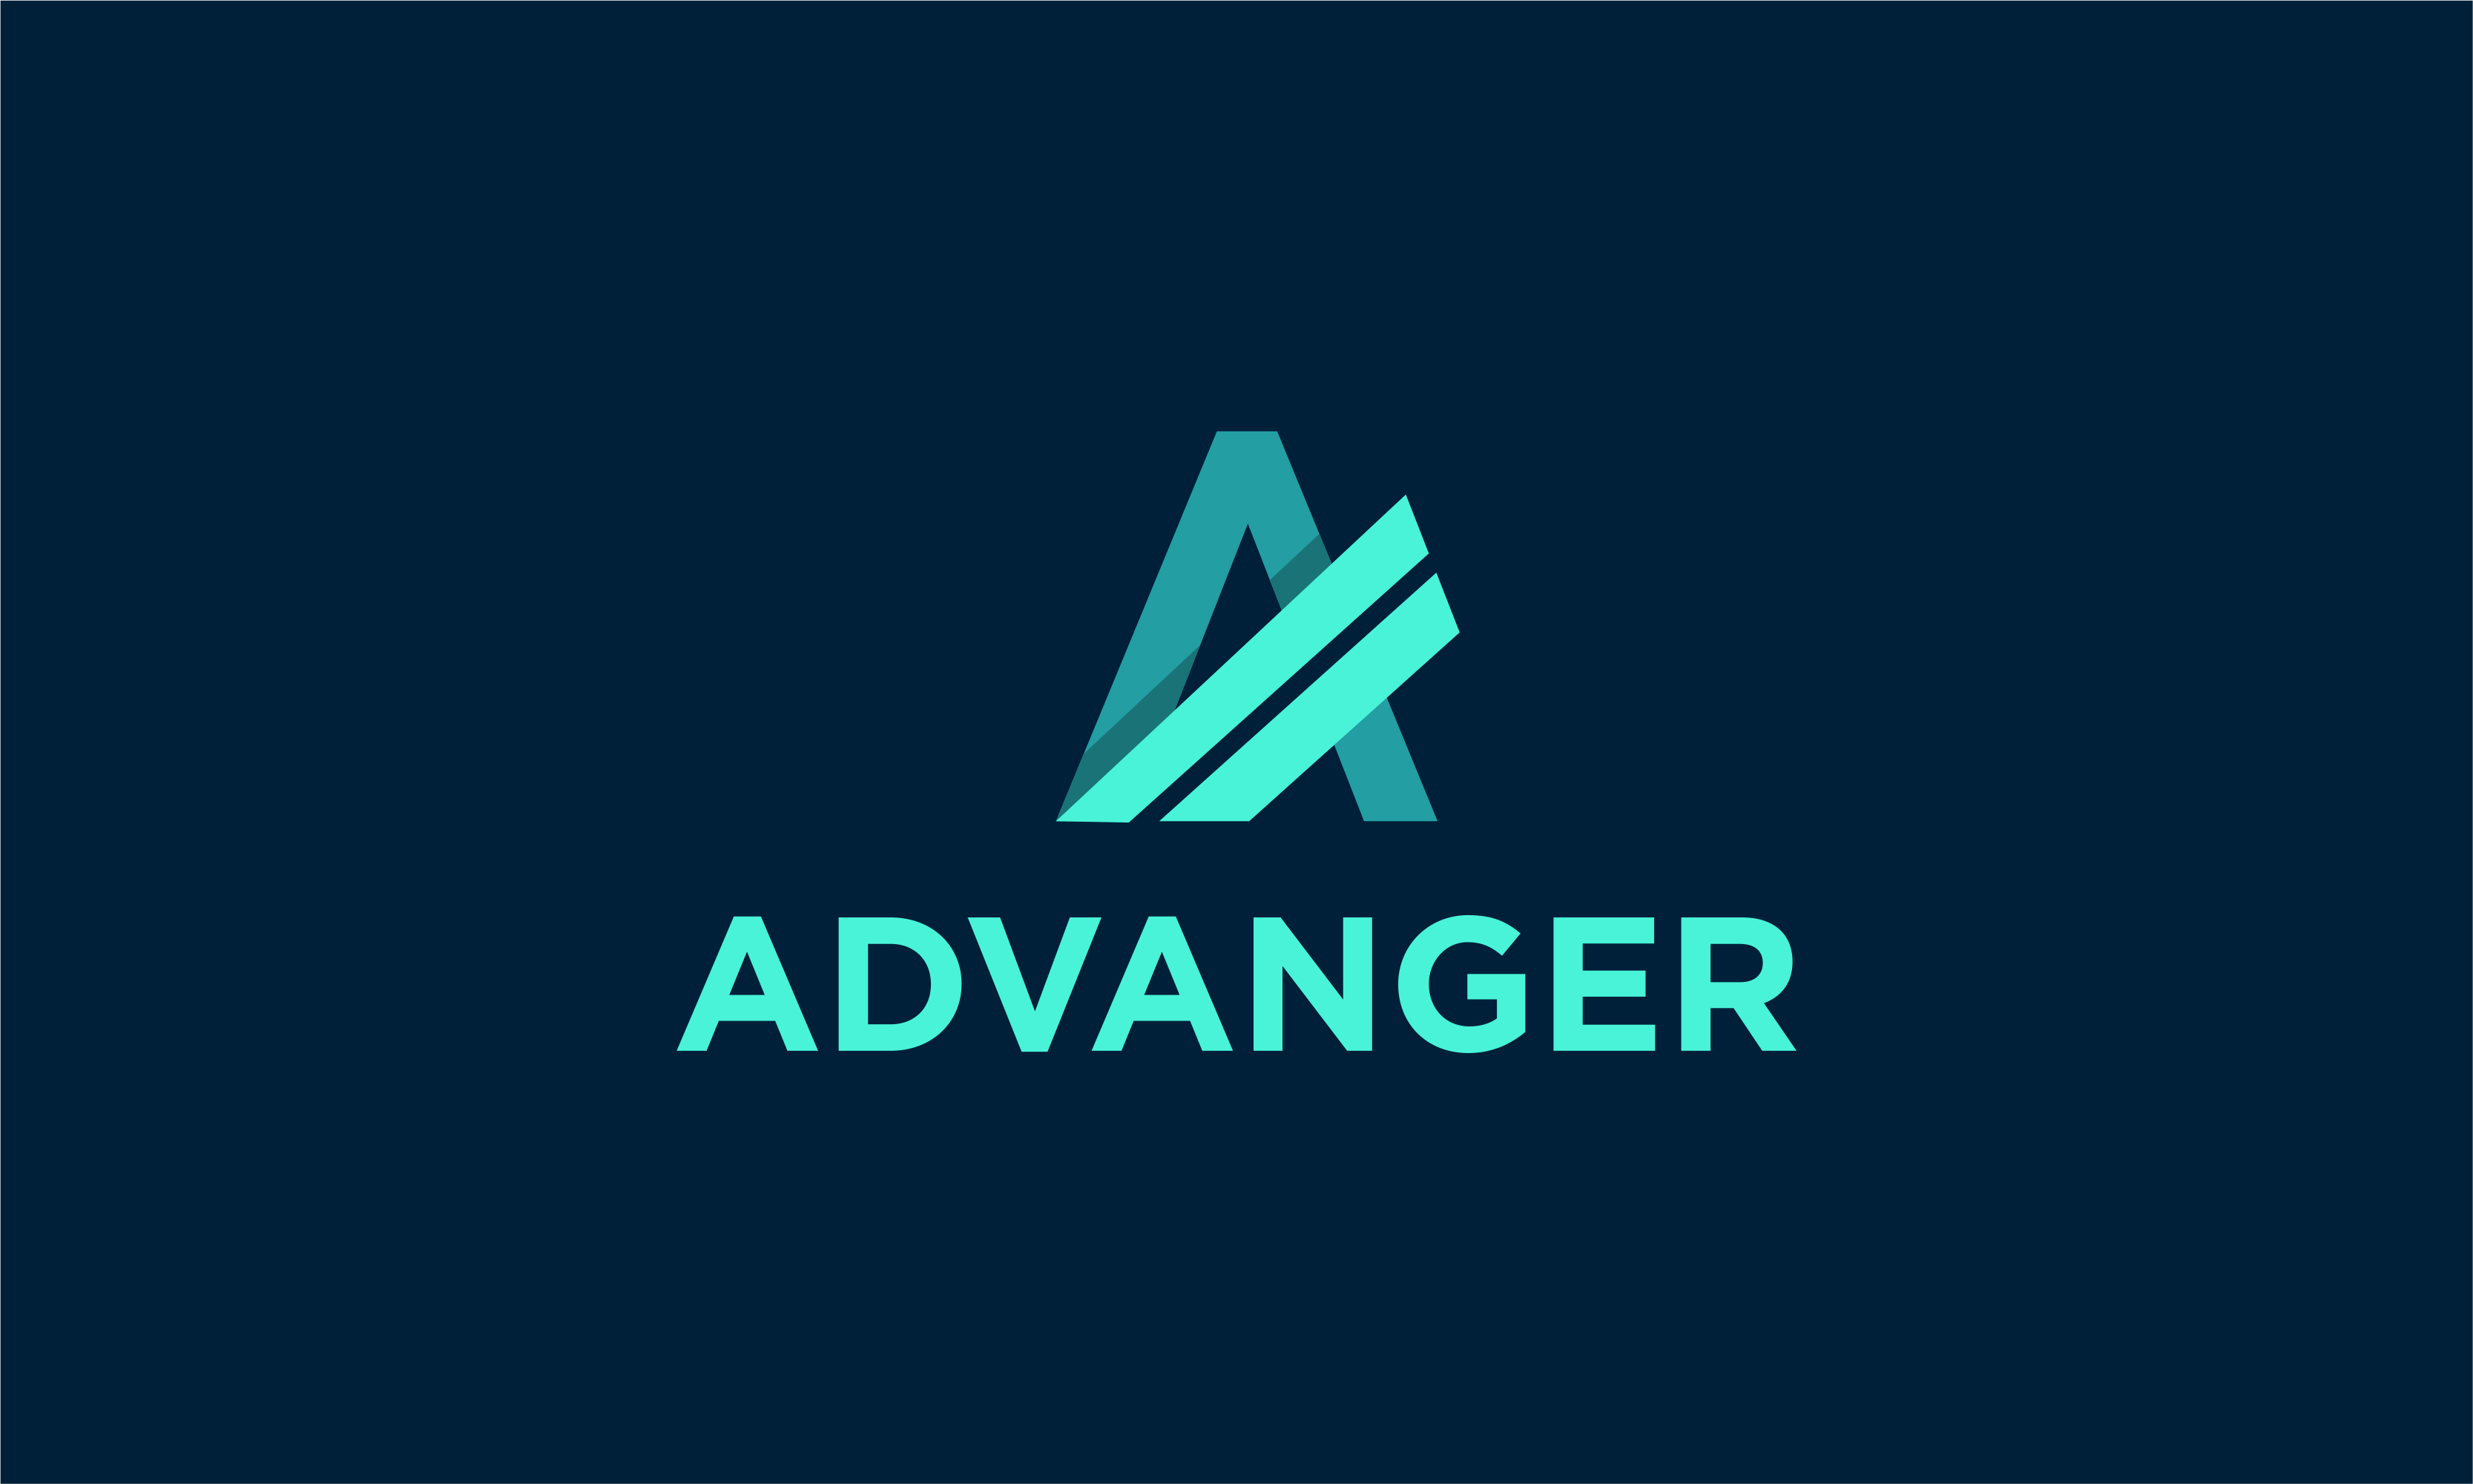 Advanger - Marketing company name for sale